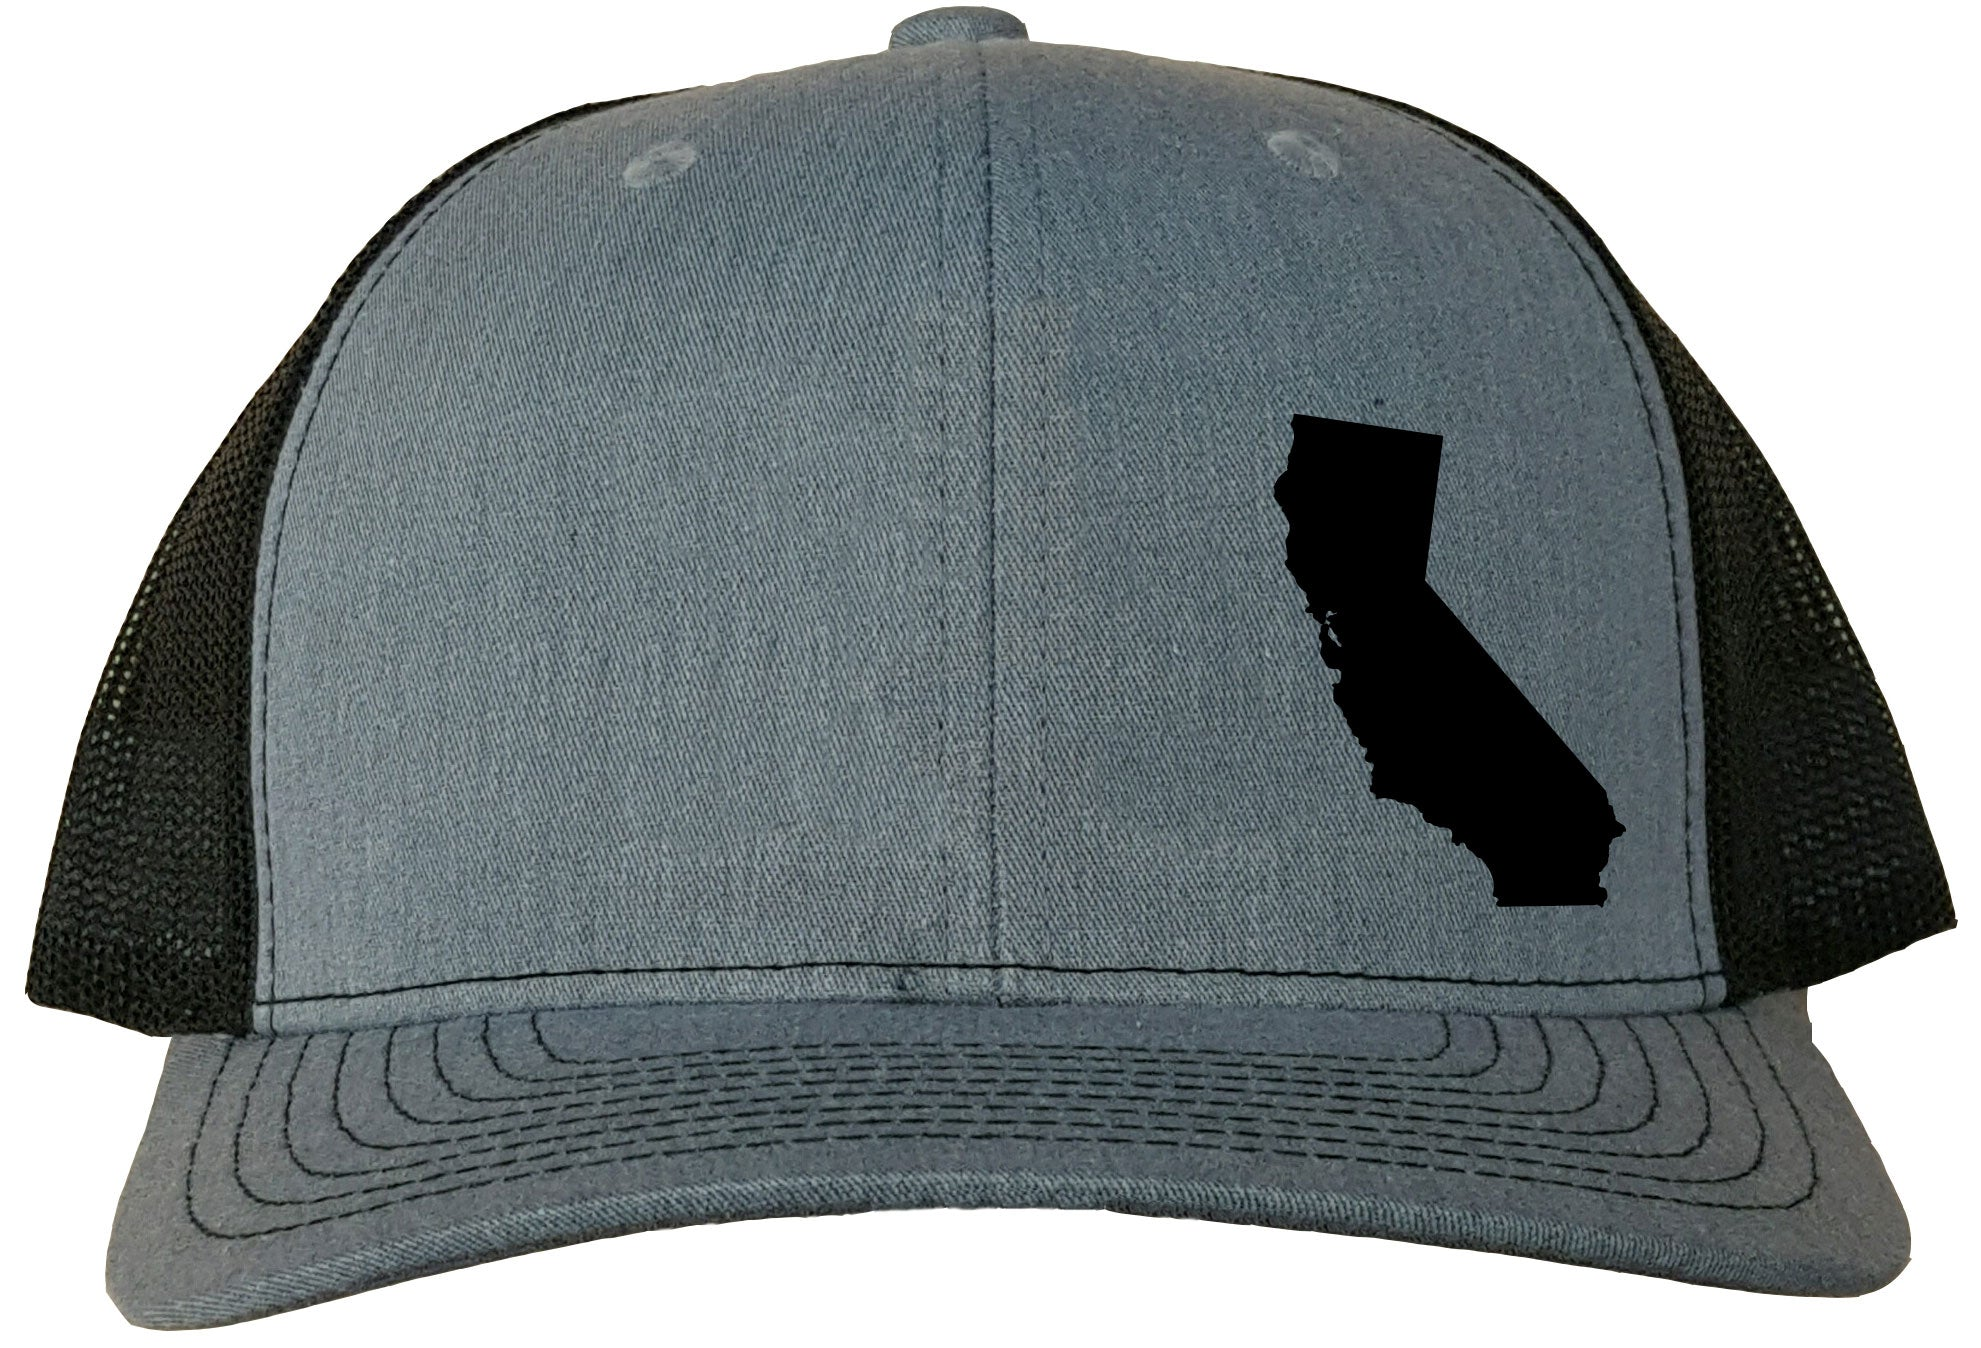 California Snapback Hat - Grey/Black